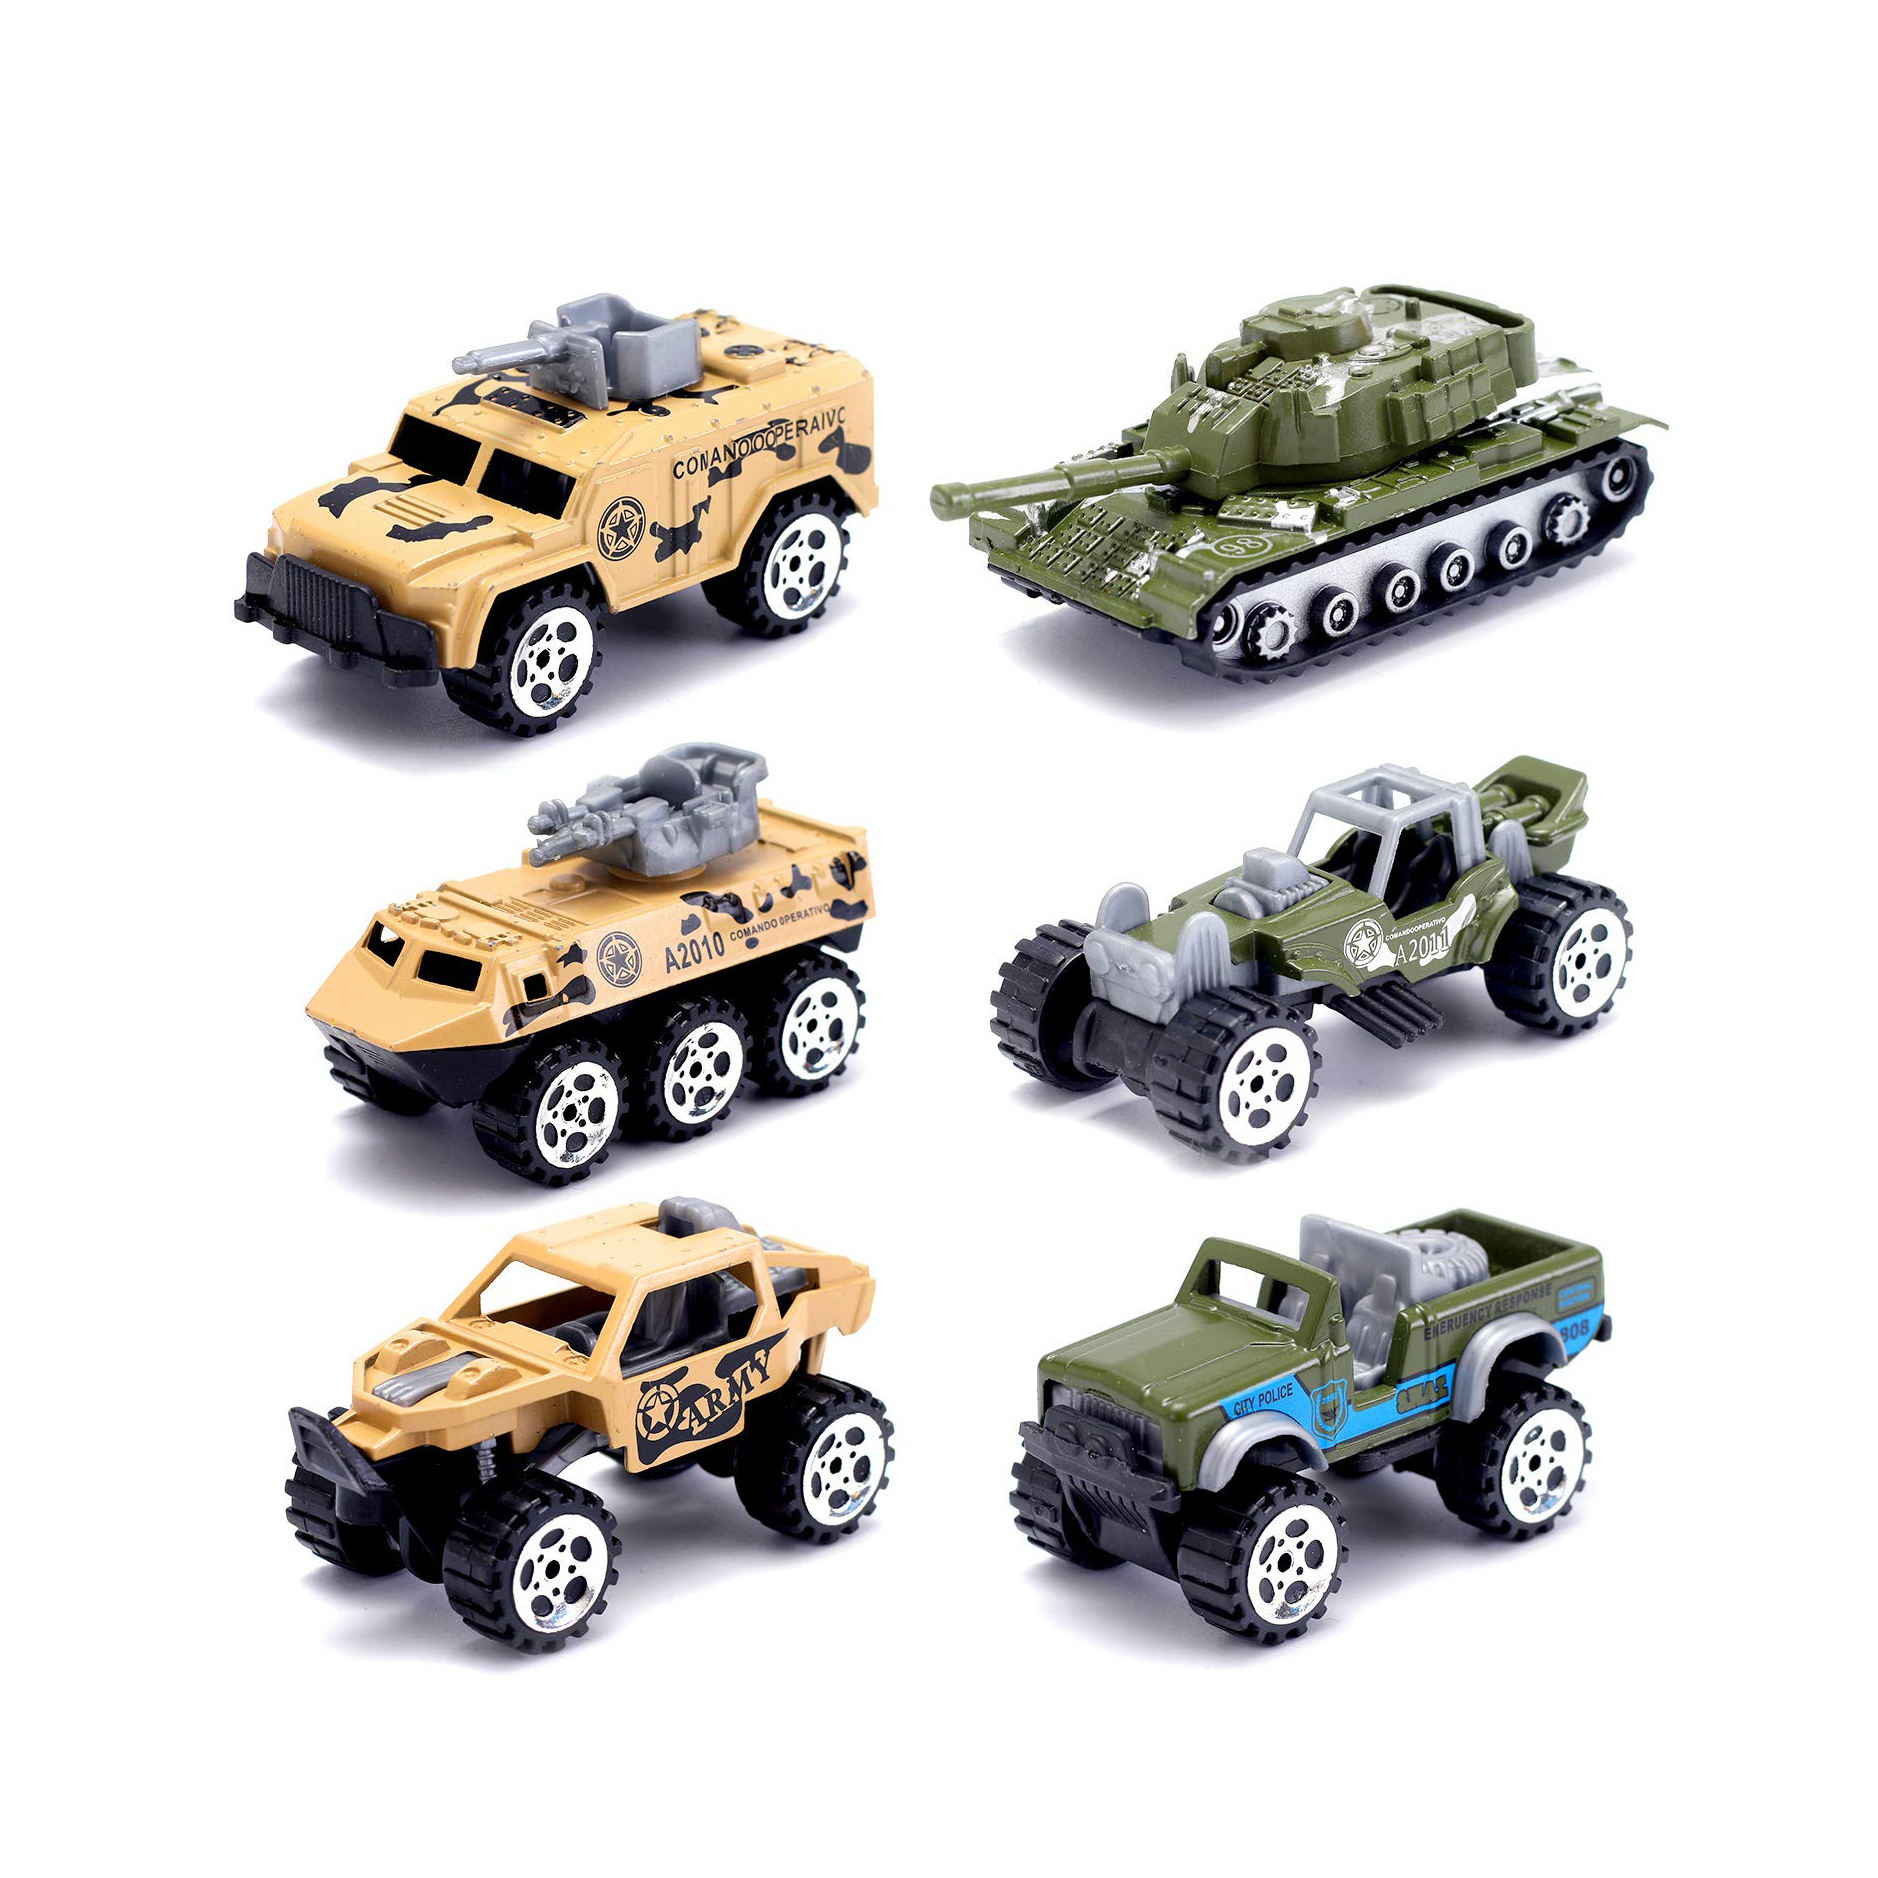 Military Toys Die-cast Vehicles ,6 Pack Assorted Mini Vehicle Set,Metal Army Car Armored Car Tank Jeep Die Cast Model Car Toy